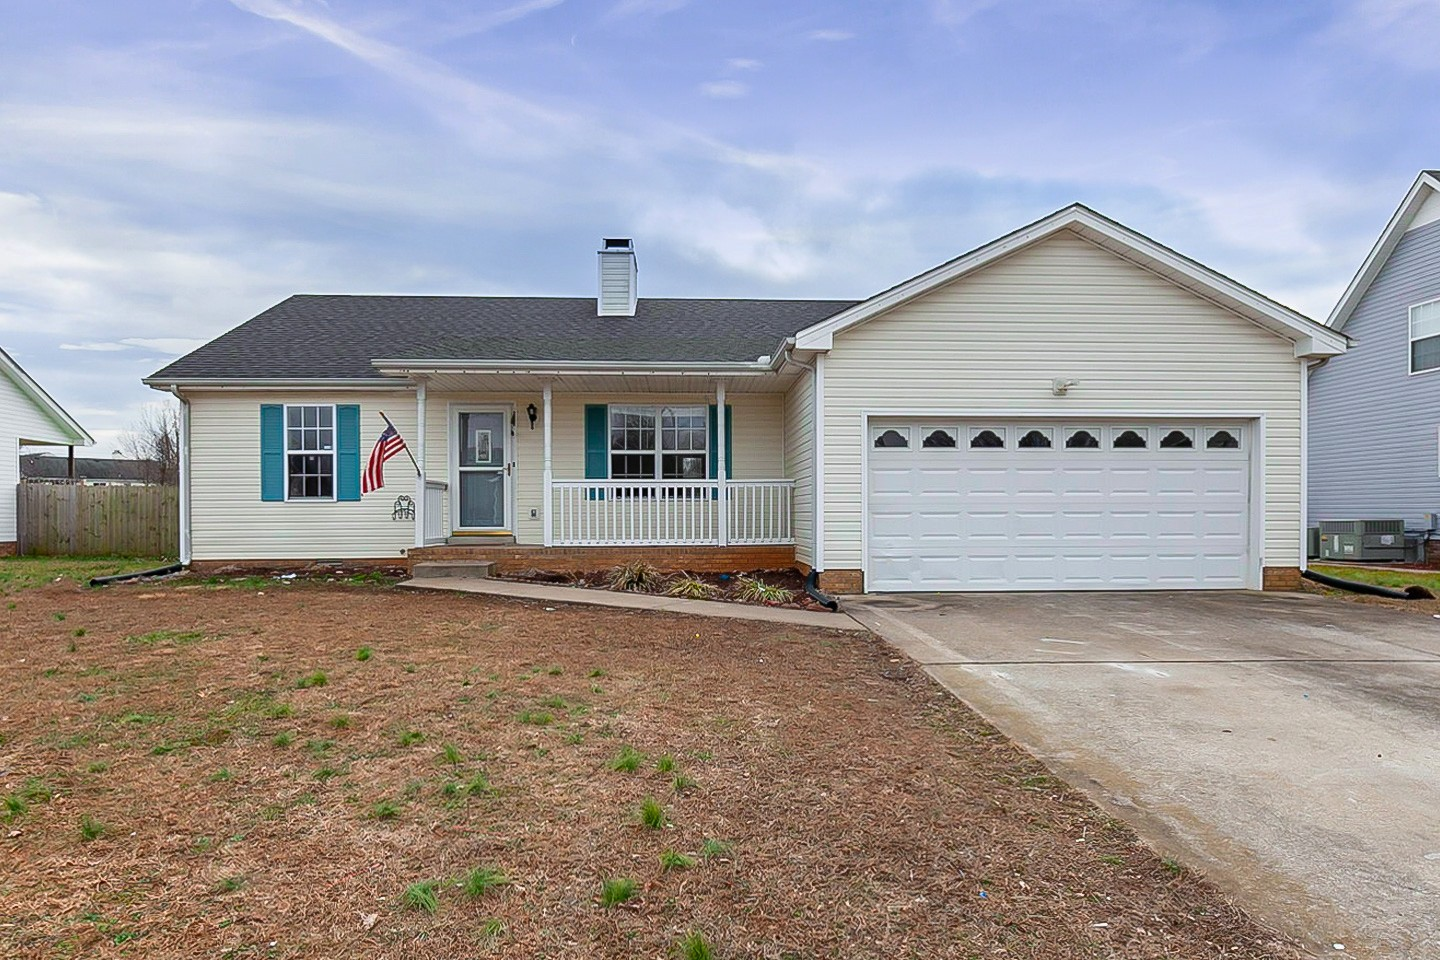 1961 Whirlaway Cir Property Photo - Clarksville, TN real estate listing